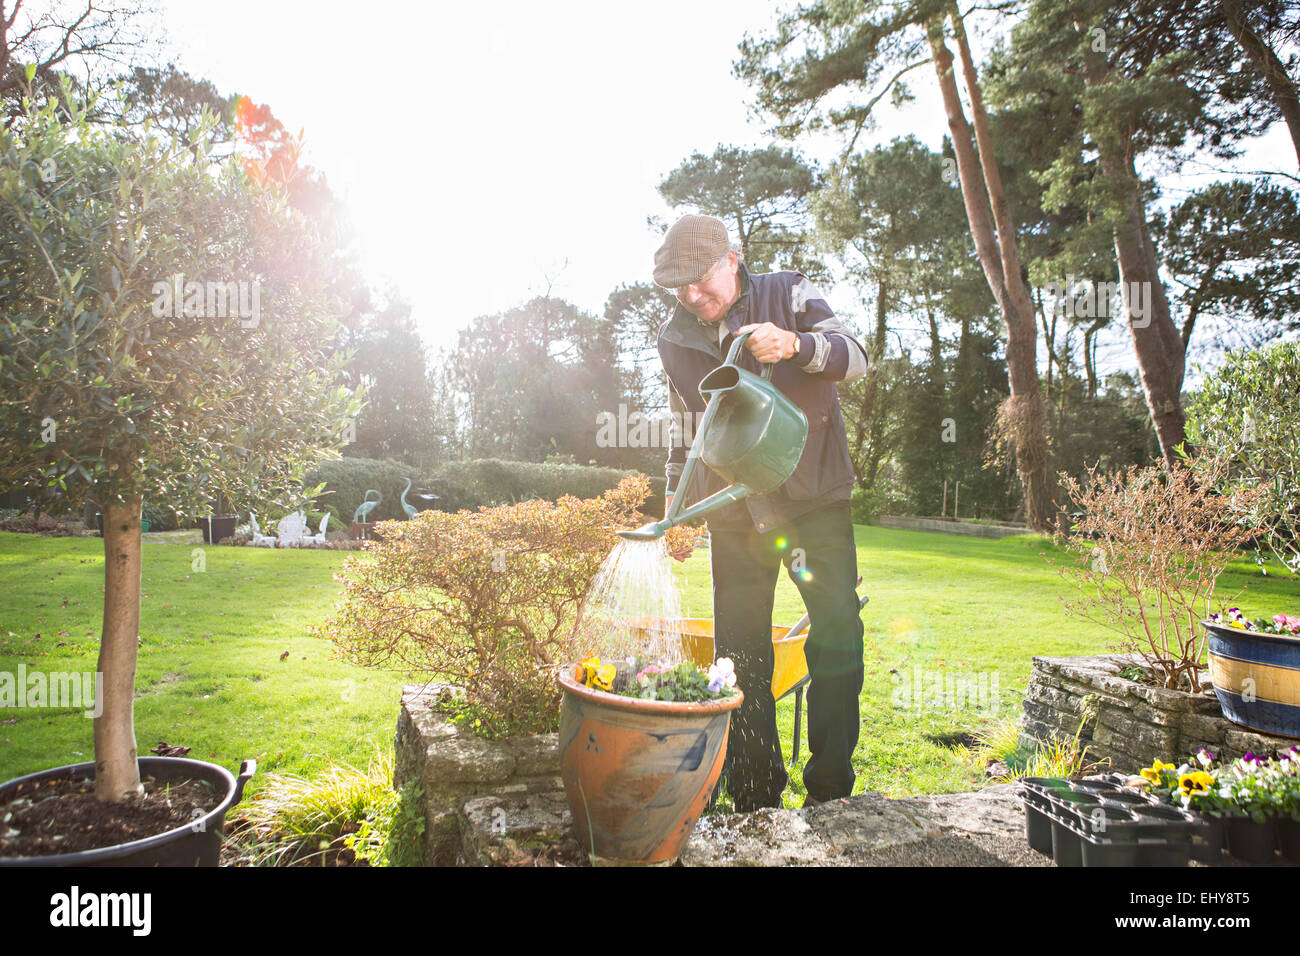 Senior man watering flowers in garden, Bournemouth, County Dorset, UK, Europe - Stock Image